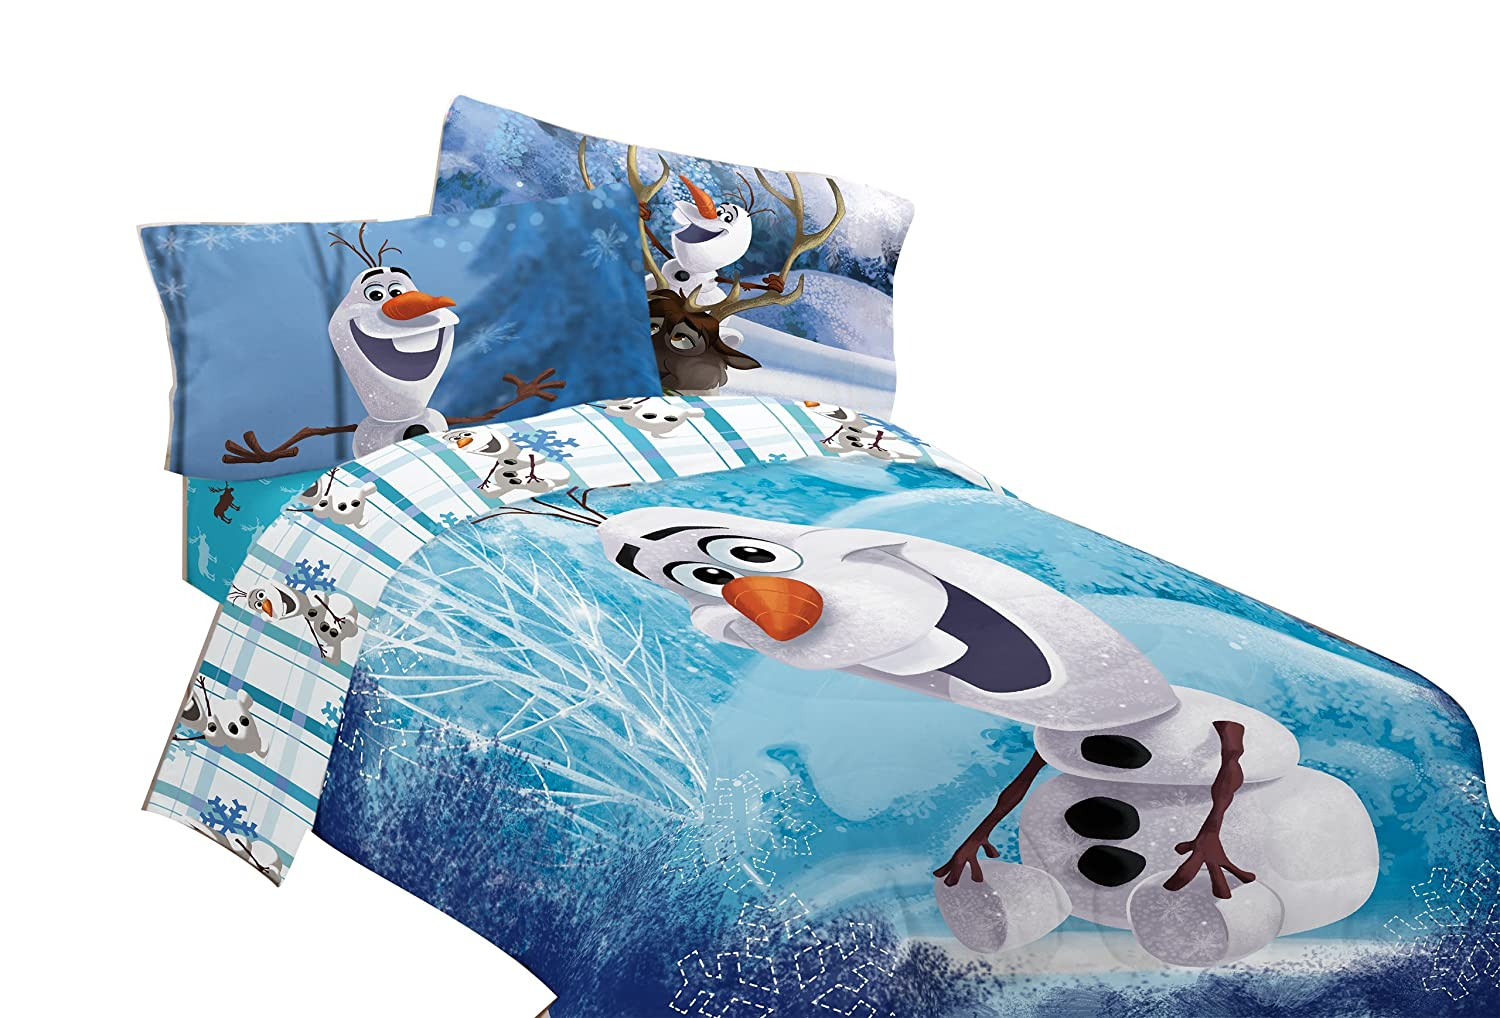 Disney Frozen Olaf Build A Snowman 72 By 86 Inch Microfiber Comforter, Twin/